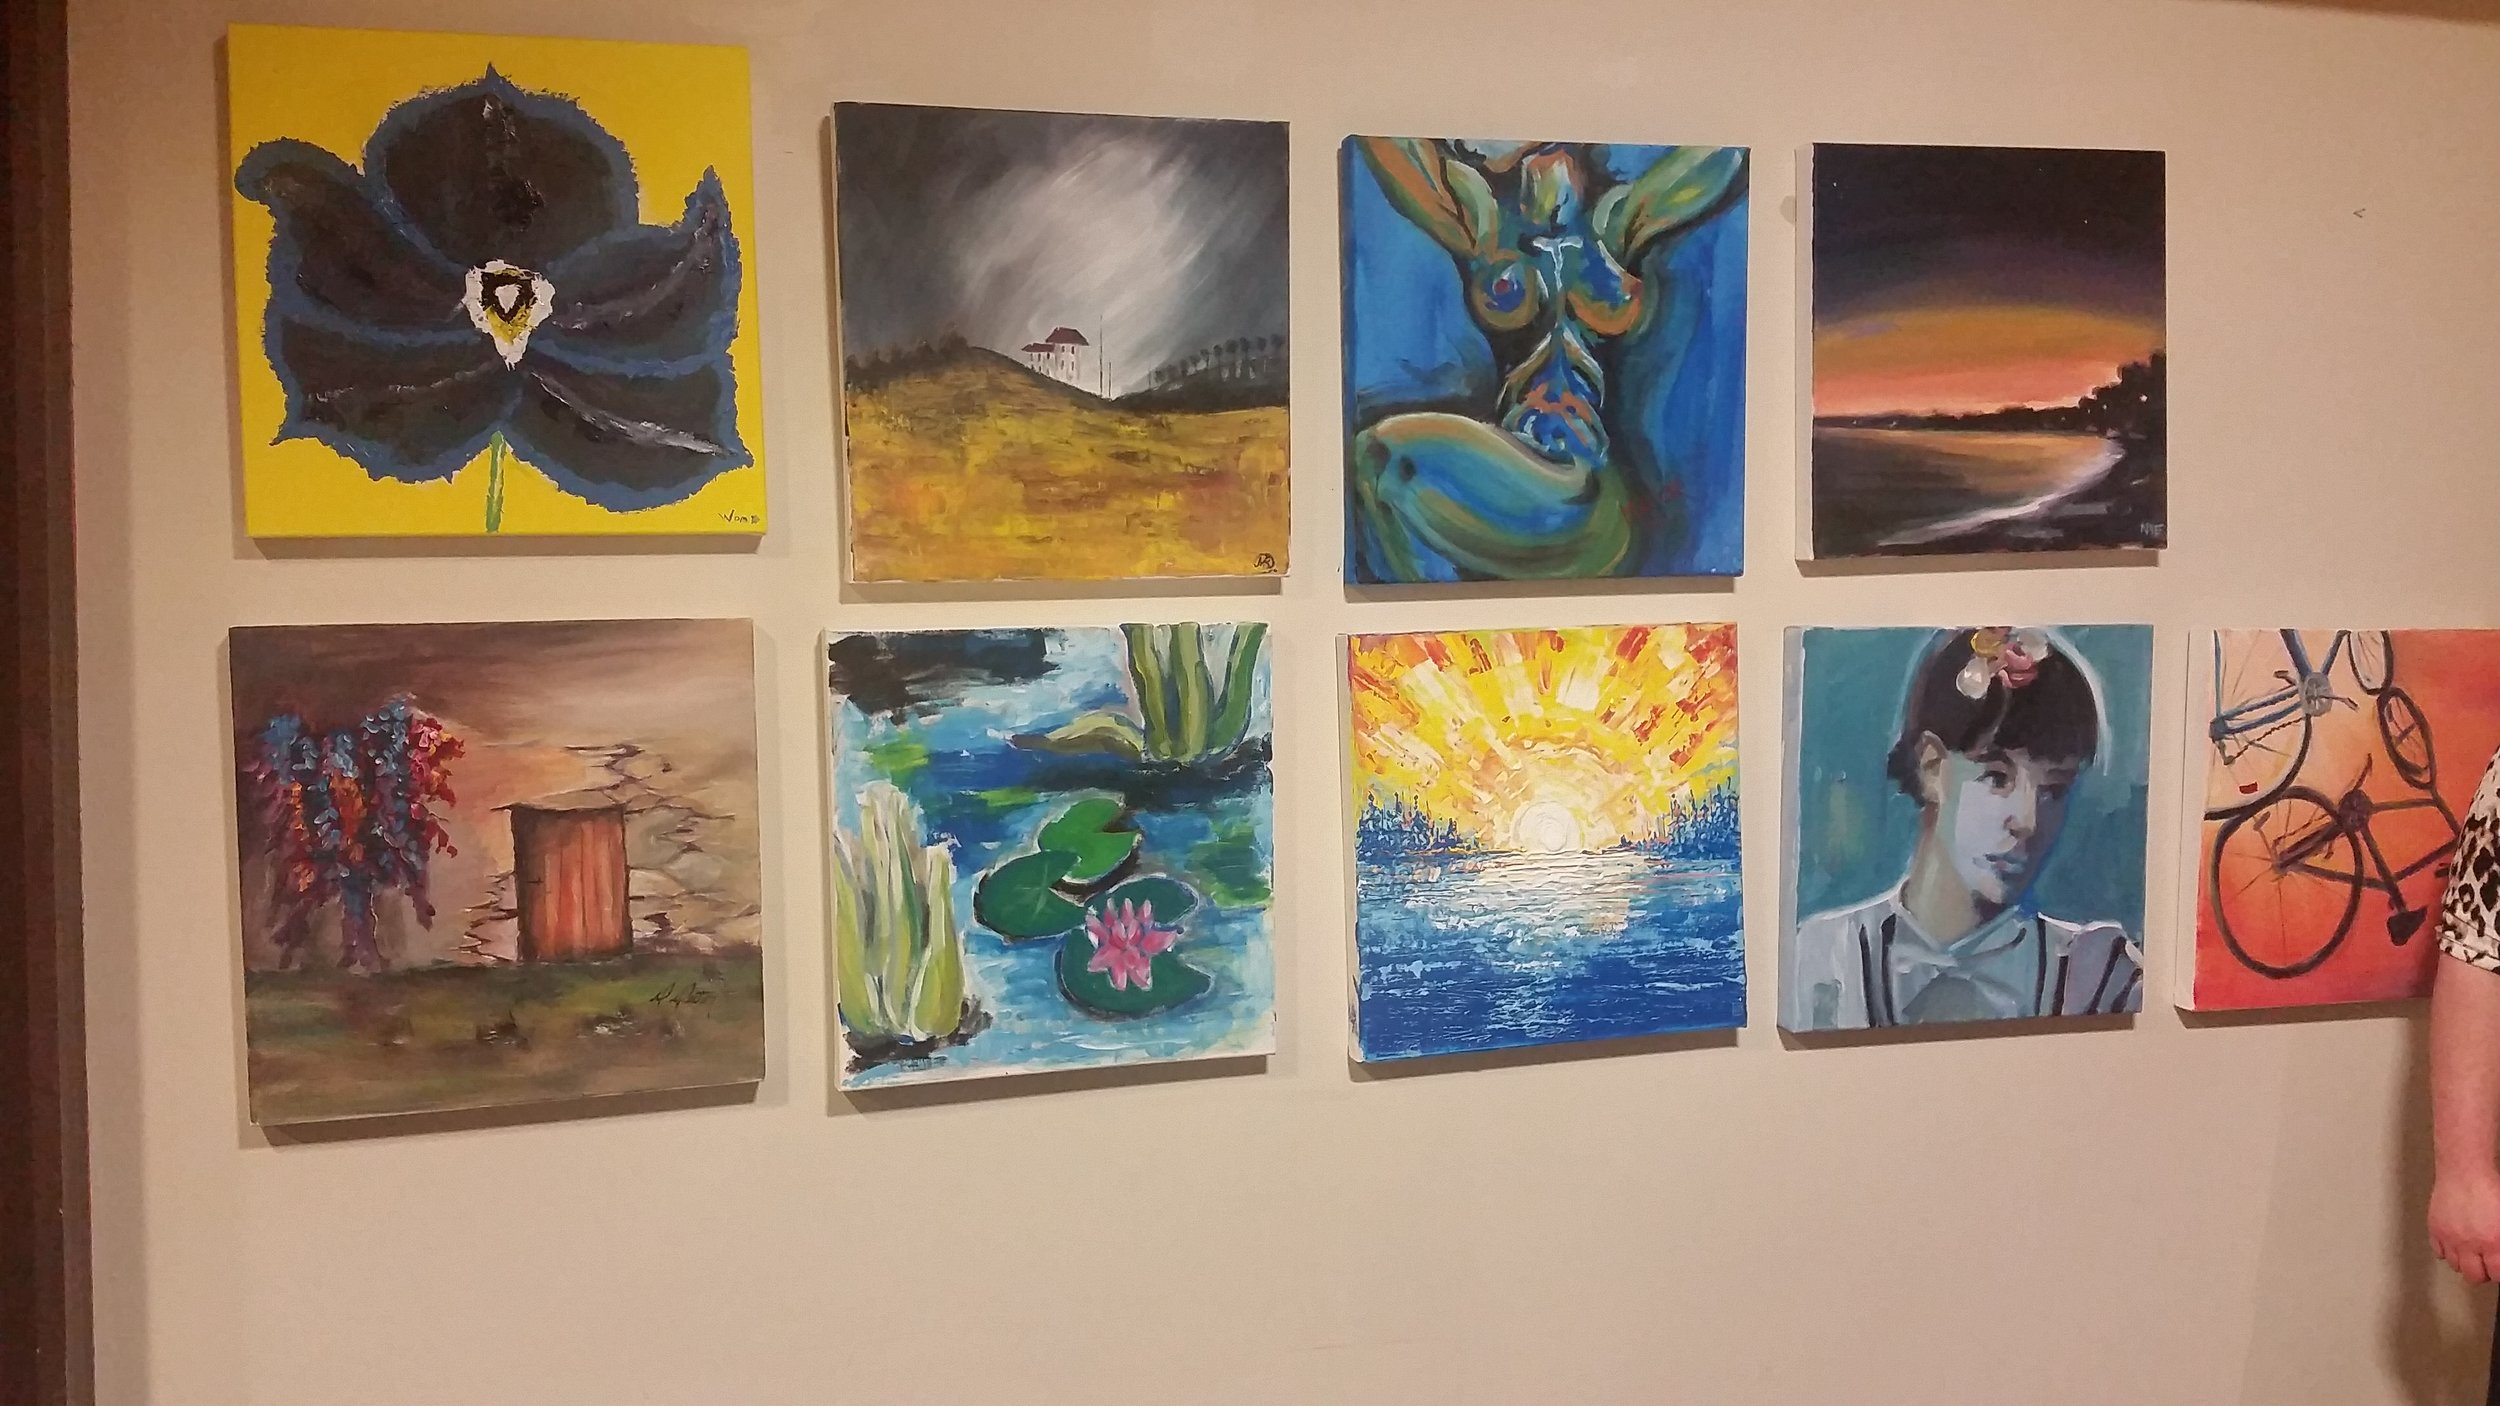 Art from round 1 ready for the silent auction. My friend was the lucky winner of the top left painting.